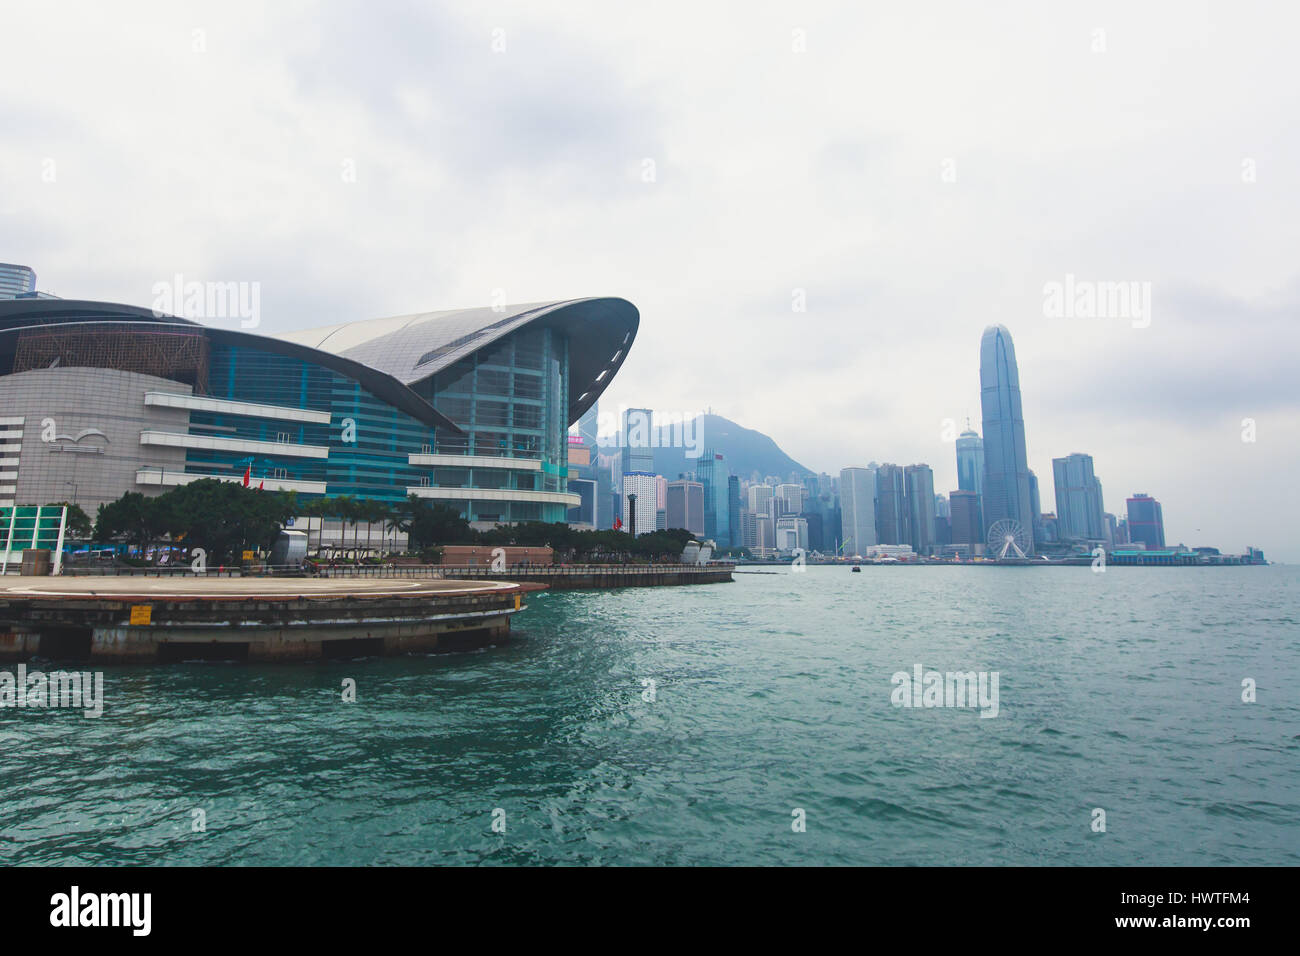 Beautiful super wide-angle summer aerial view View of Hong Kong island skyline, Victoria Bay harbor, with skyscrapers, - Stock Image